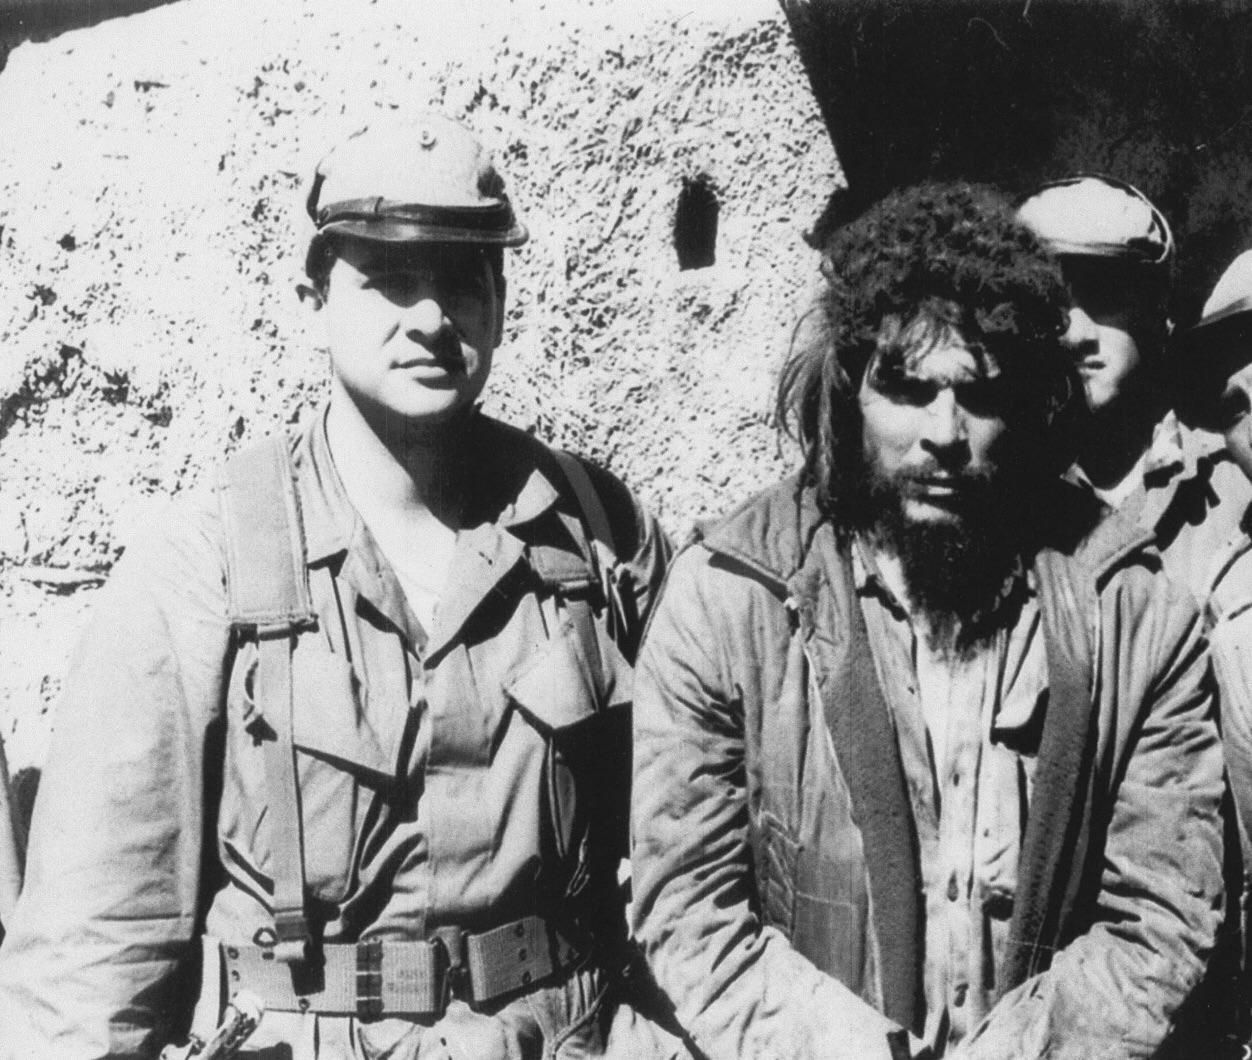 Félix Rodríguez, a Cuban exile turned CIA operative next to a Captured Che Guevara moments Before His Execution in Bolivia. 1967